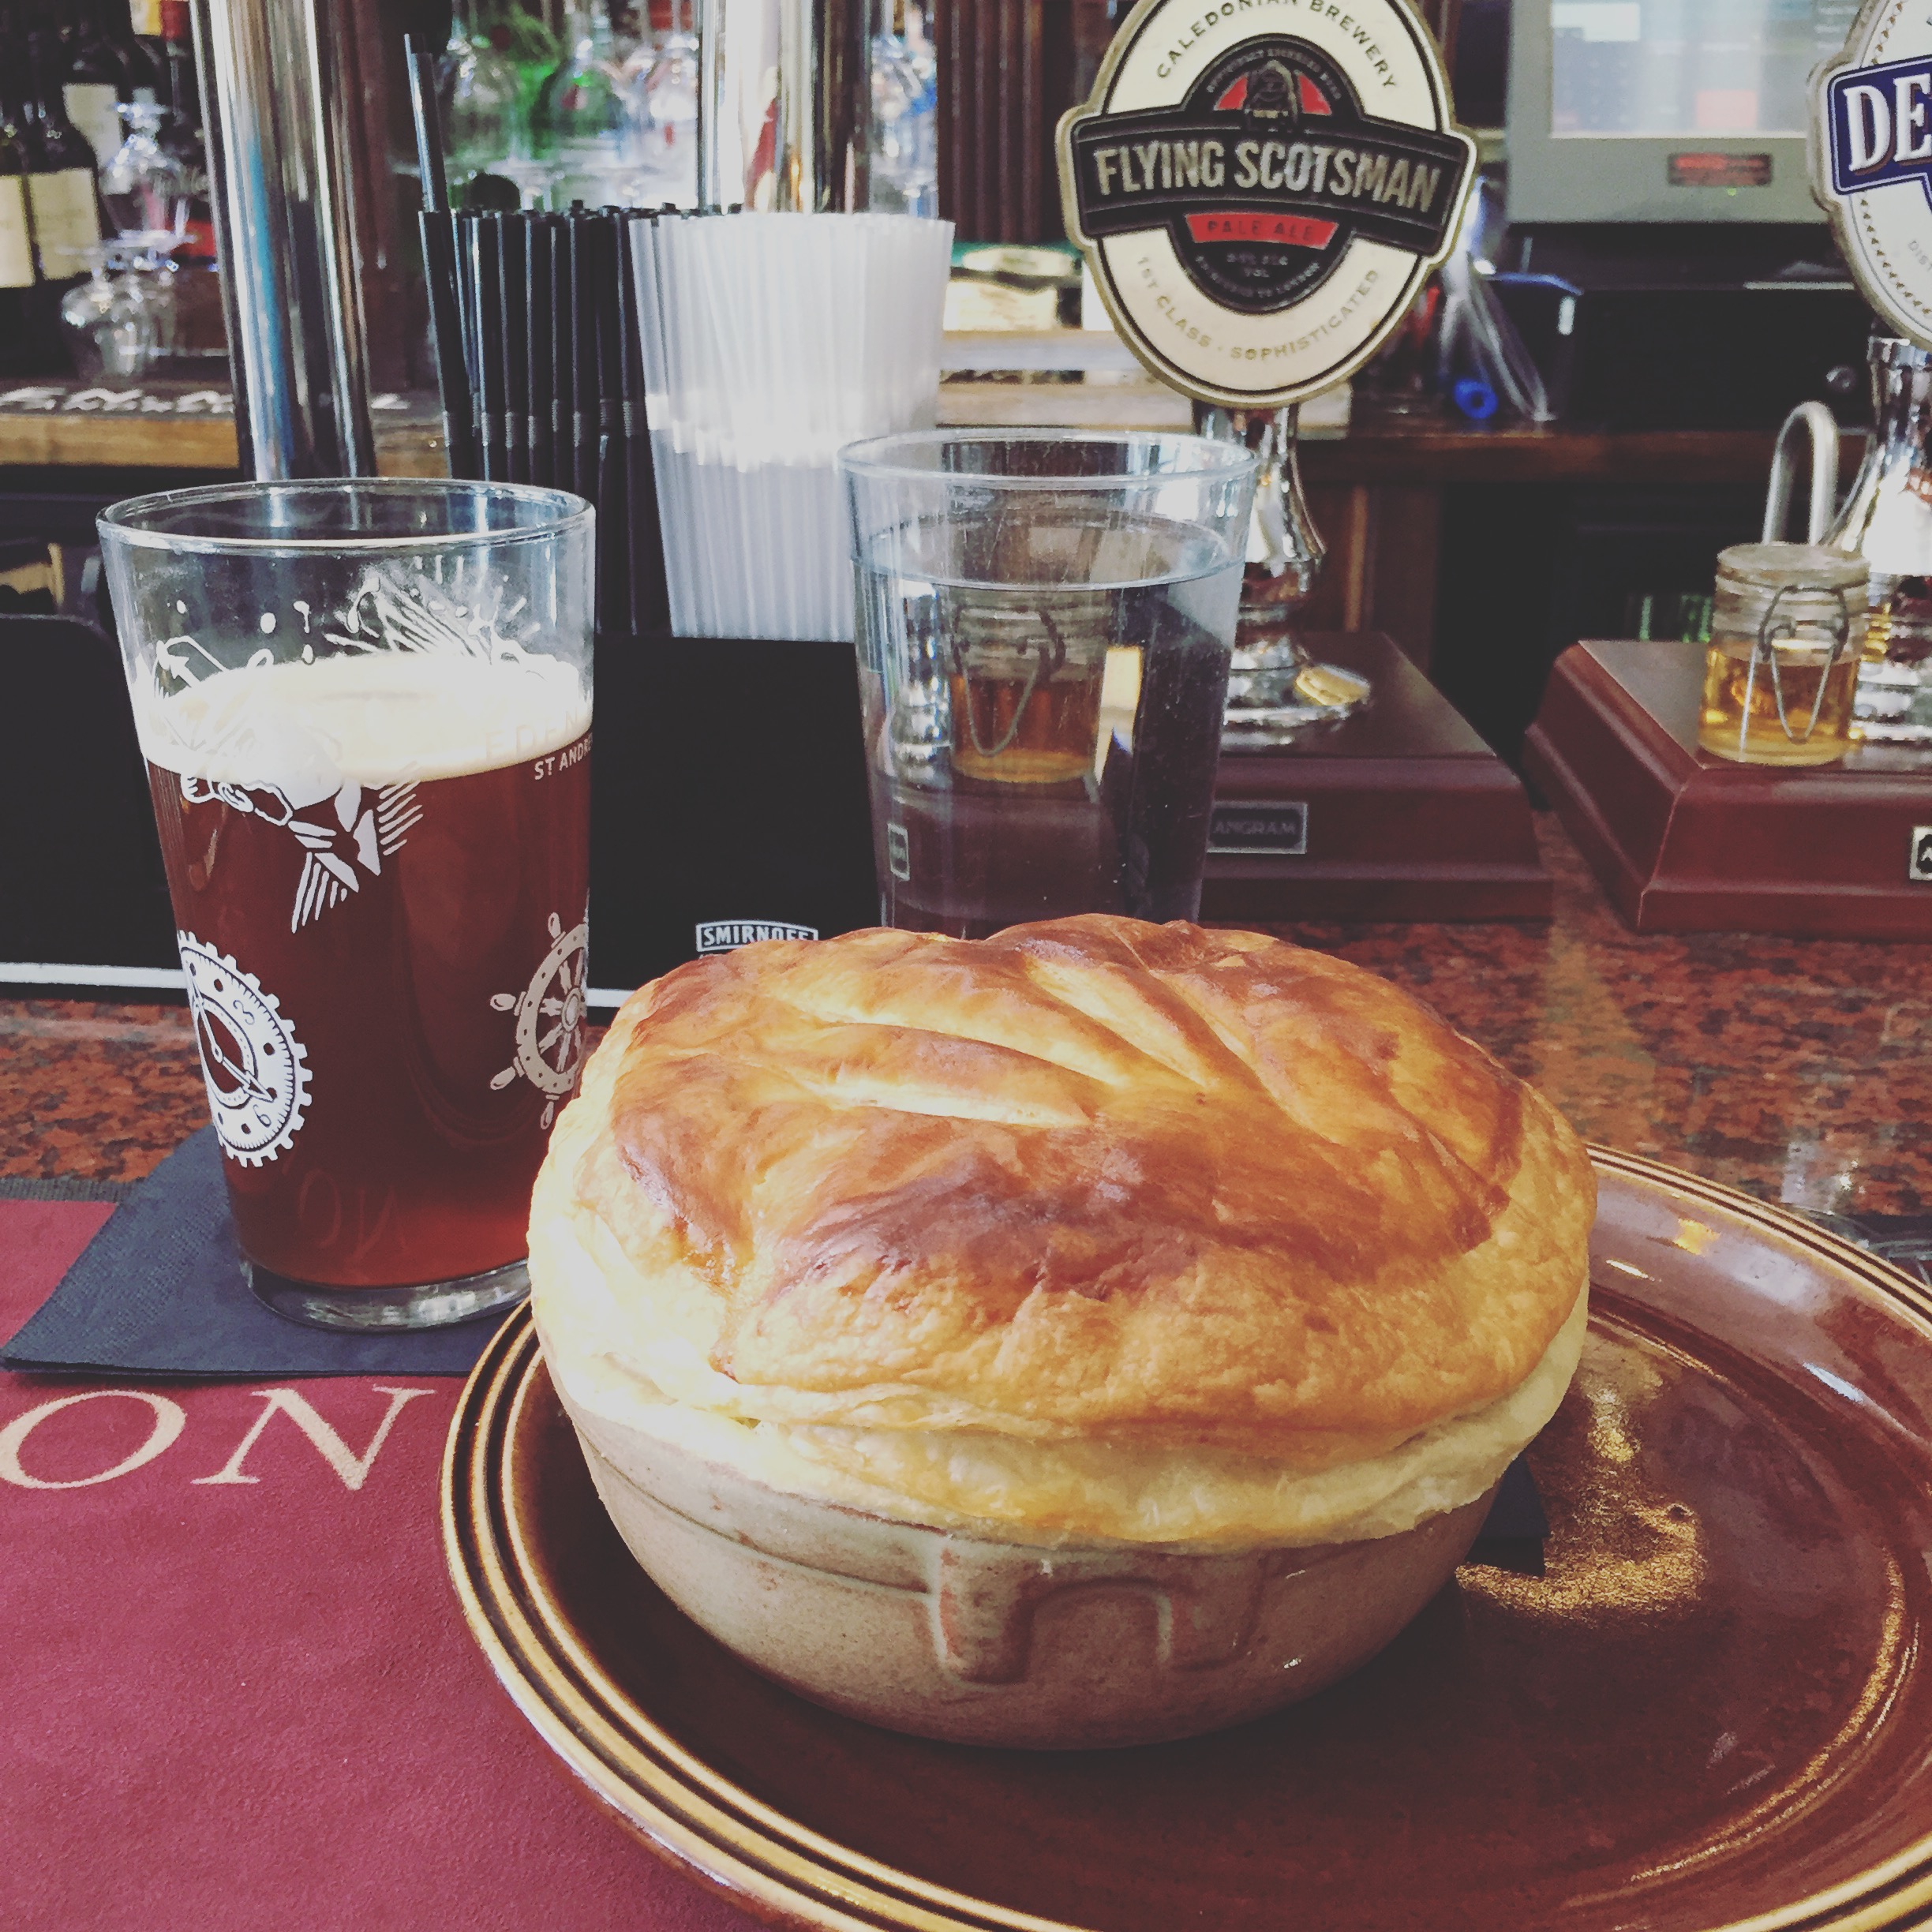 Scottish pie and ale